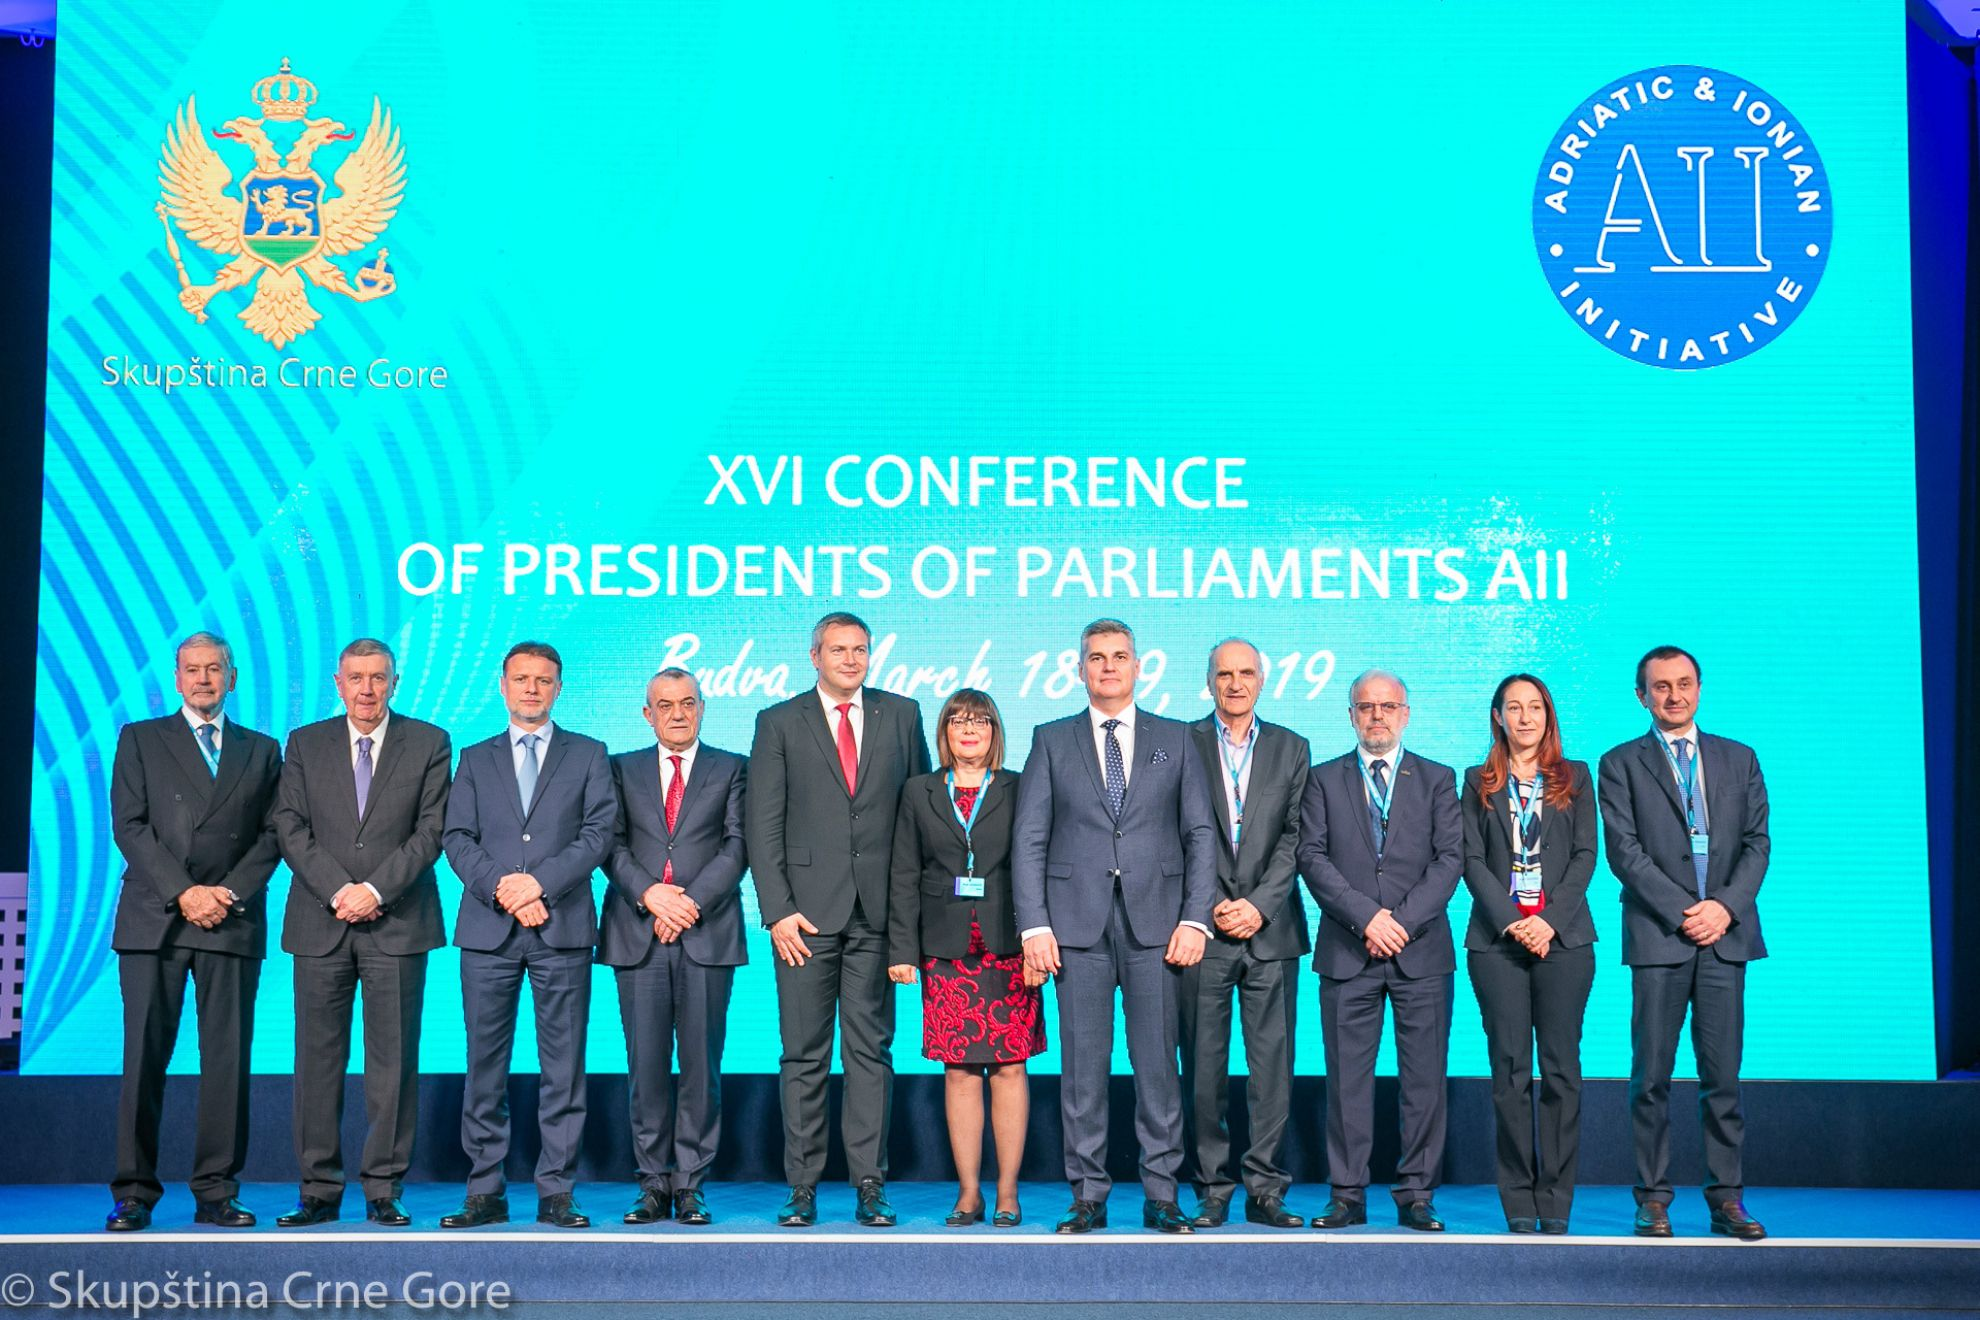 XVI CONFERENCE OF PRESIDENTS OF PARLIAMENTS OF THE AII - BUDVA, 18-19 MARCH 2019